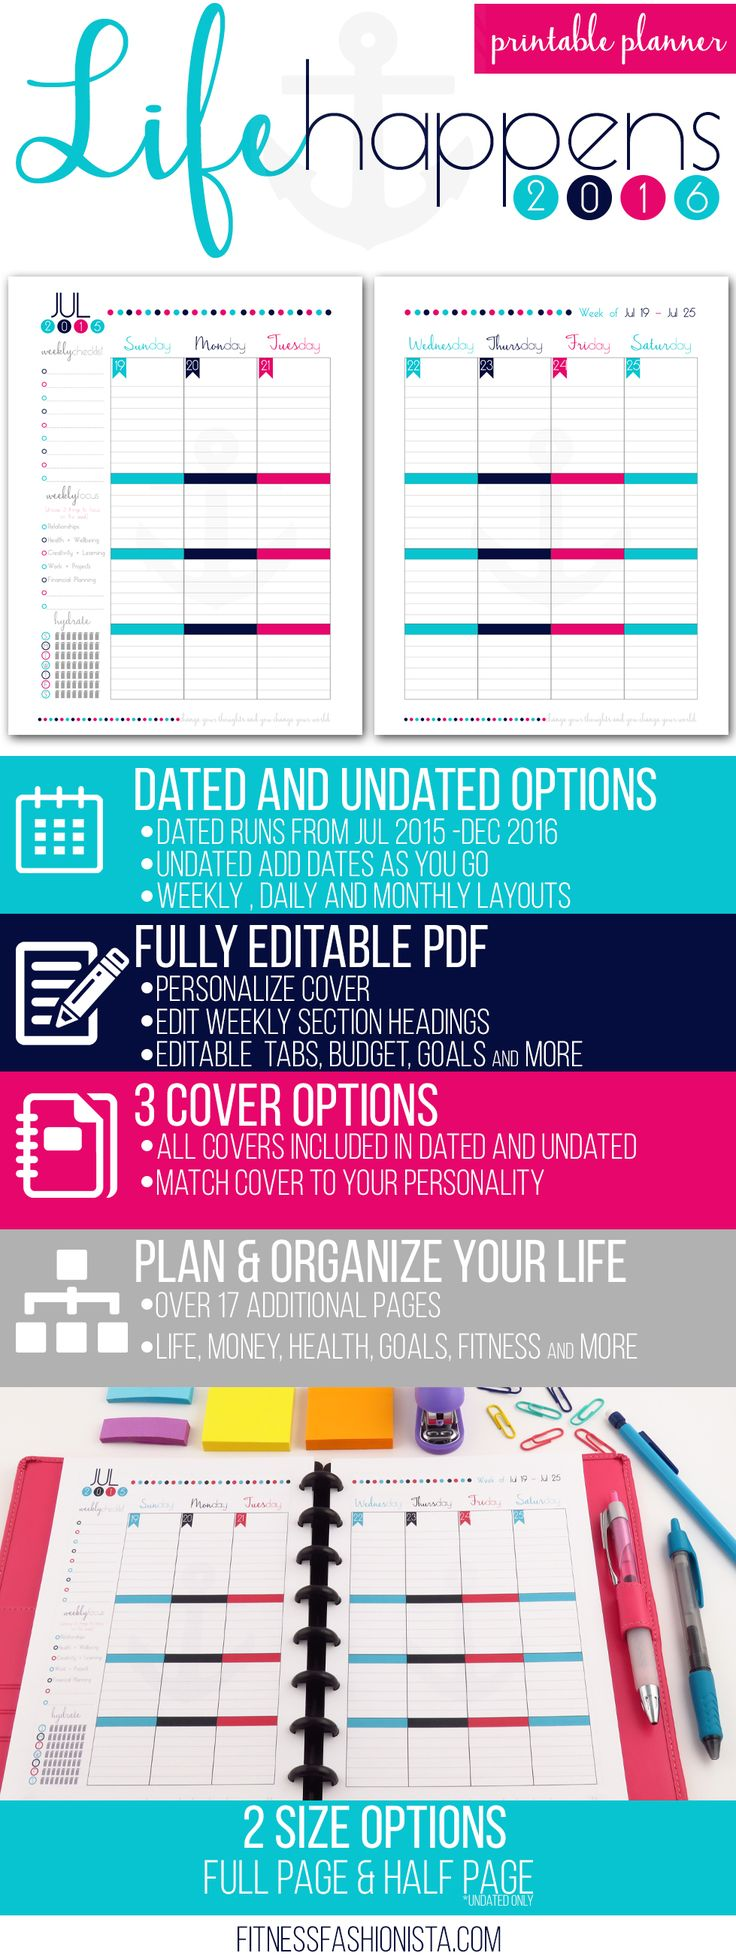 Life Happens Printable Planner - Fully Editable, Dated and Undated Options, 3 Cover Options.  Now you can plan and organize your entire life.